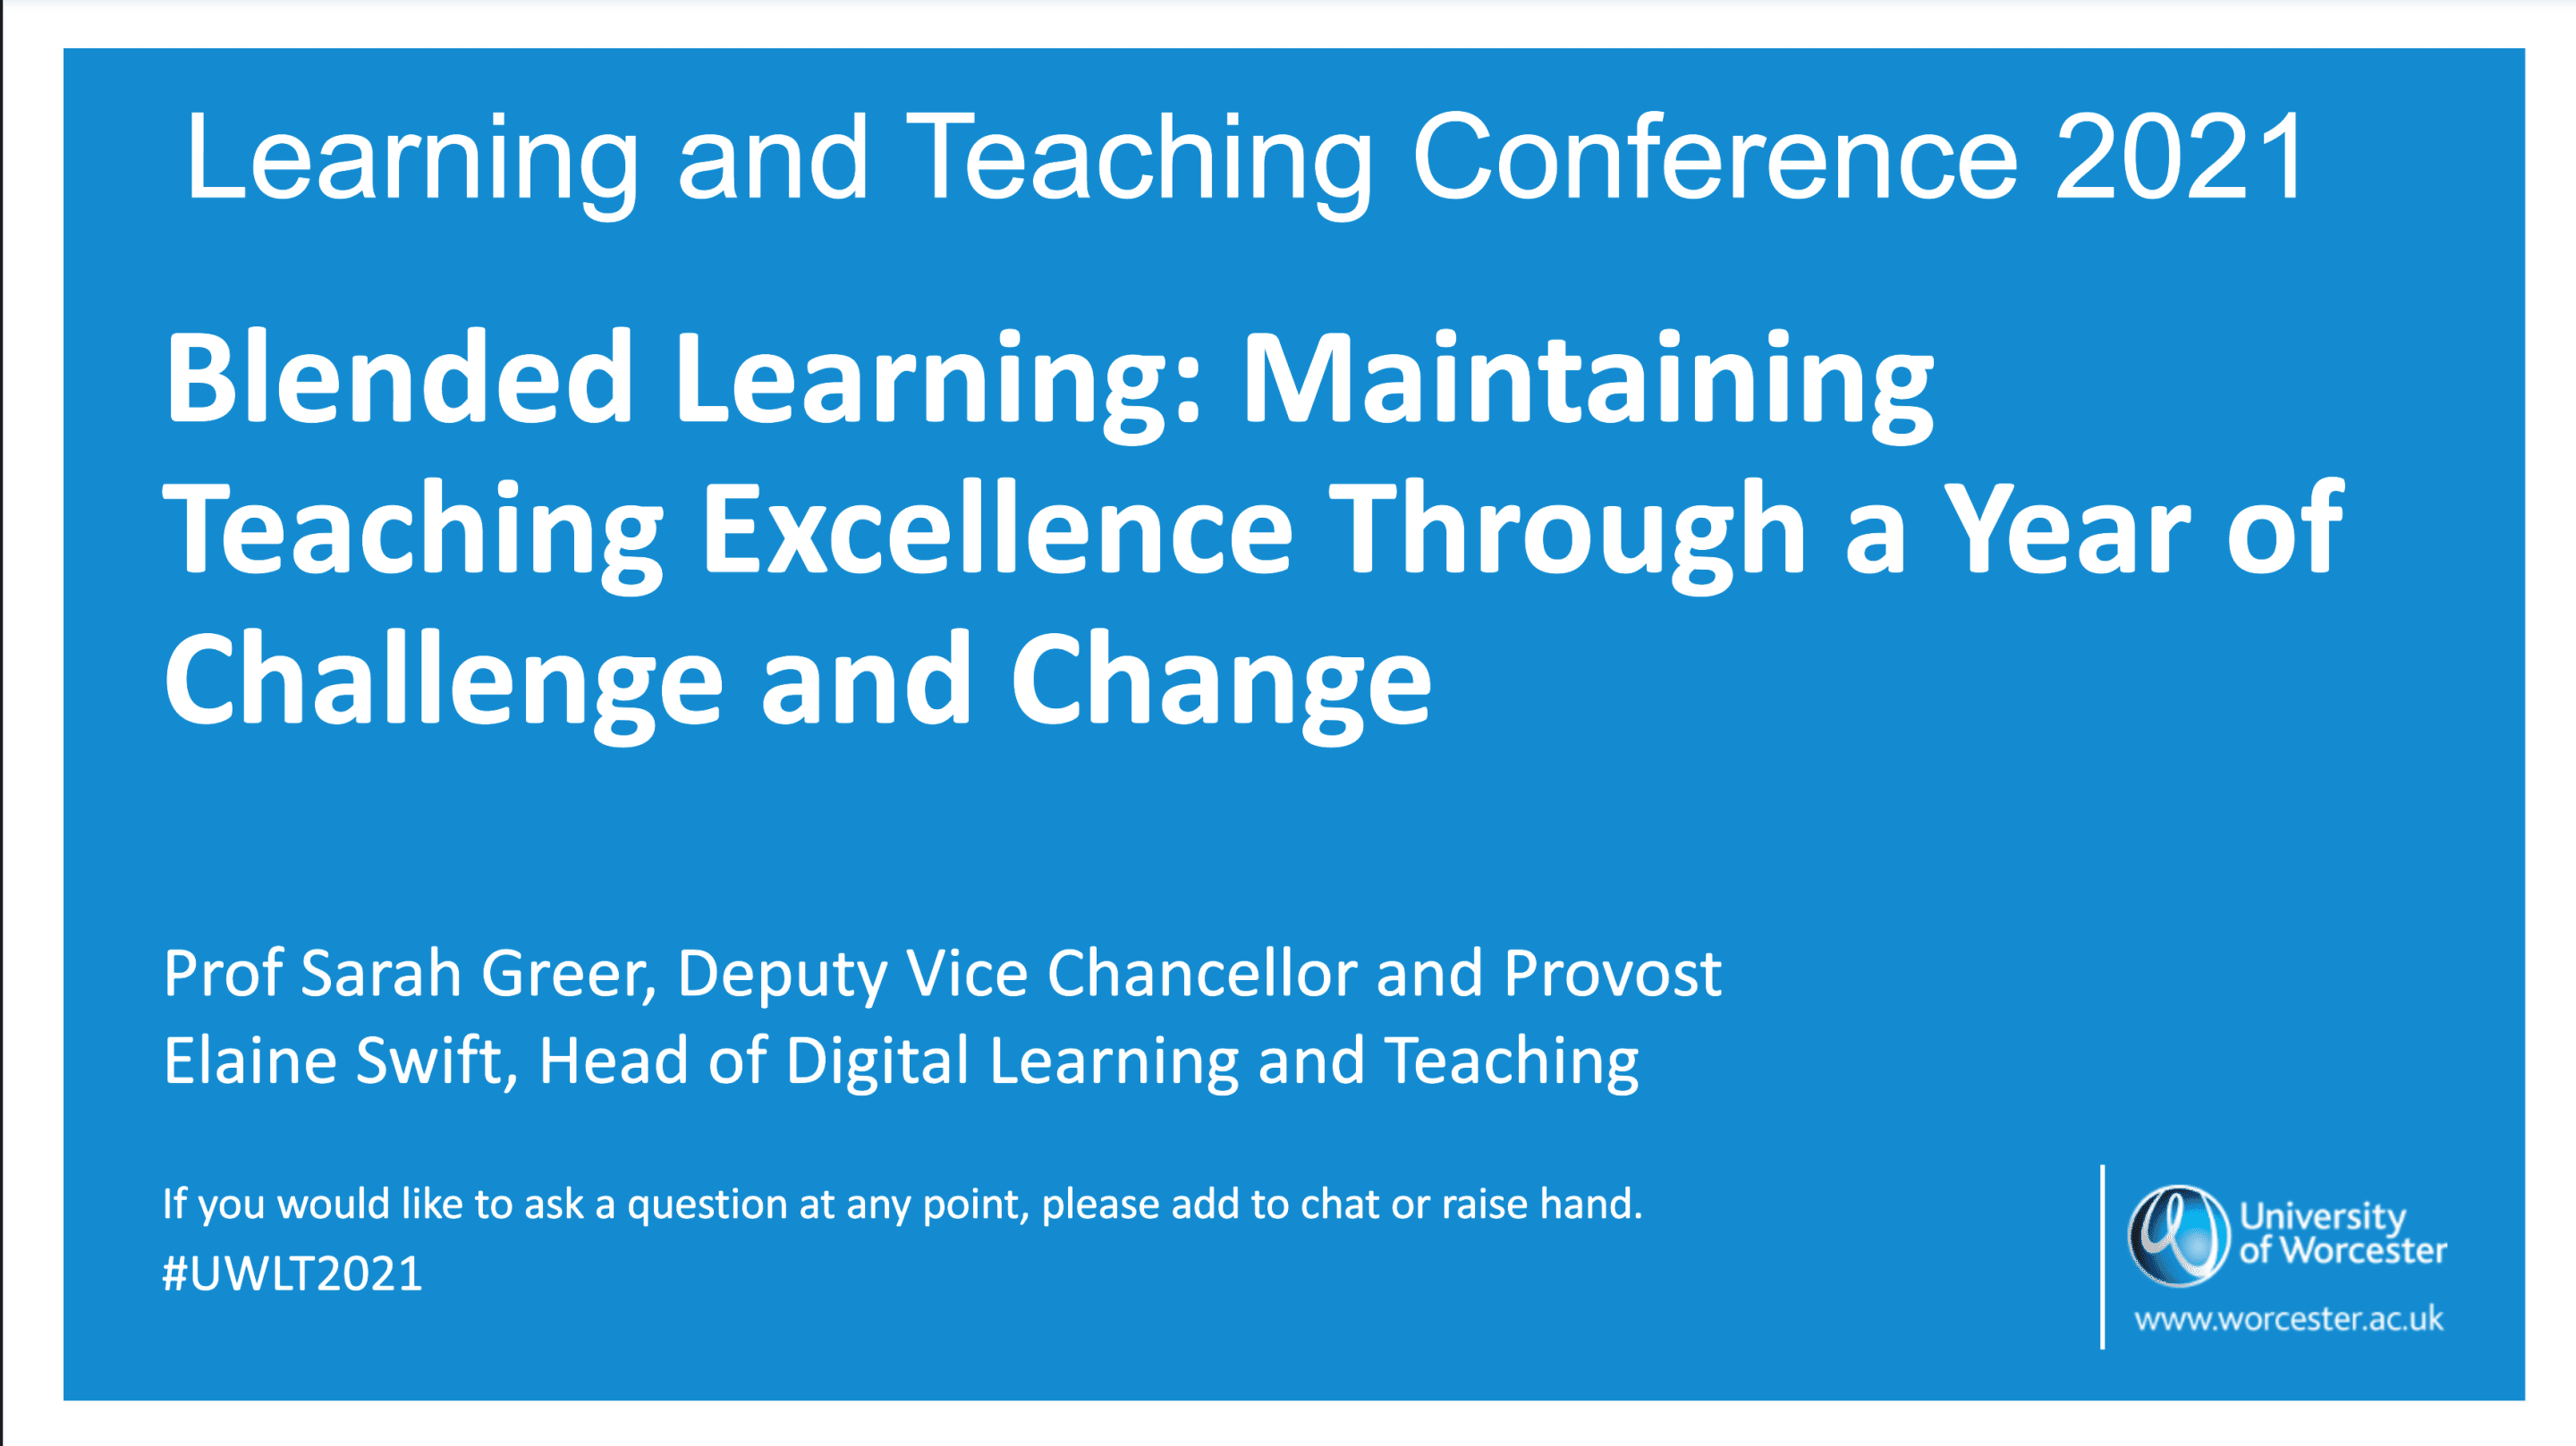 Teaching Excellence Through a Year of Challenge & Change